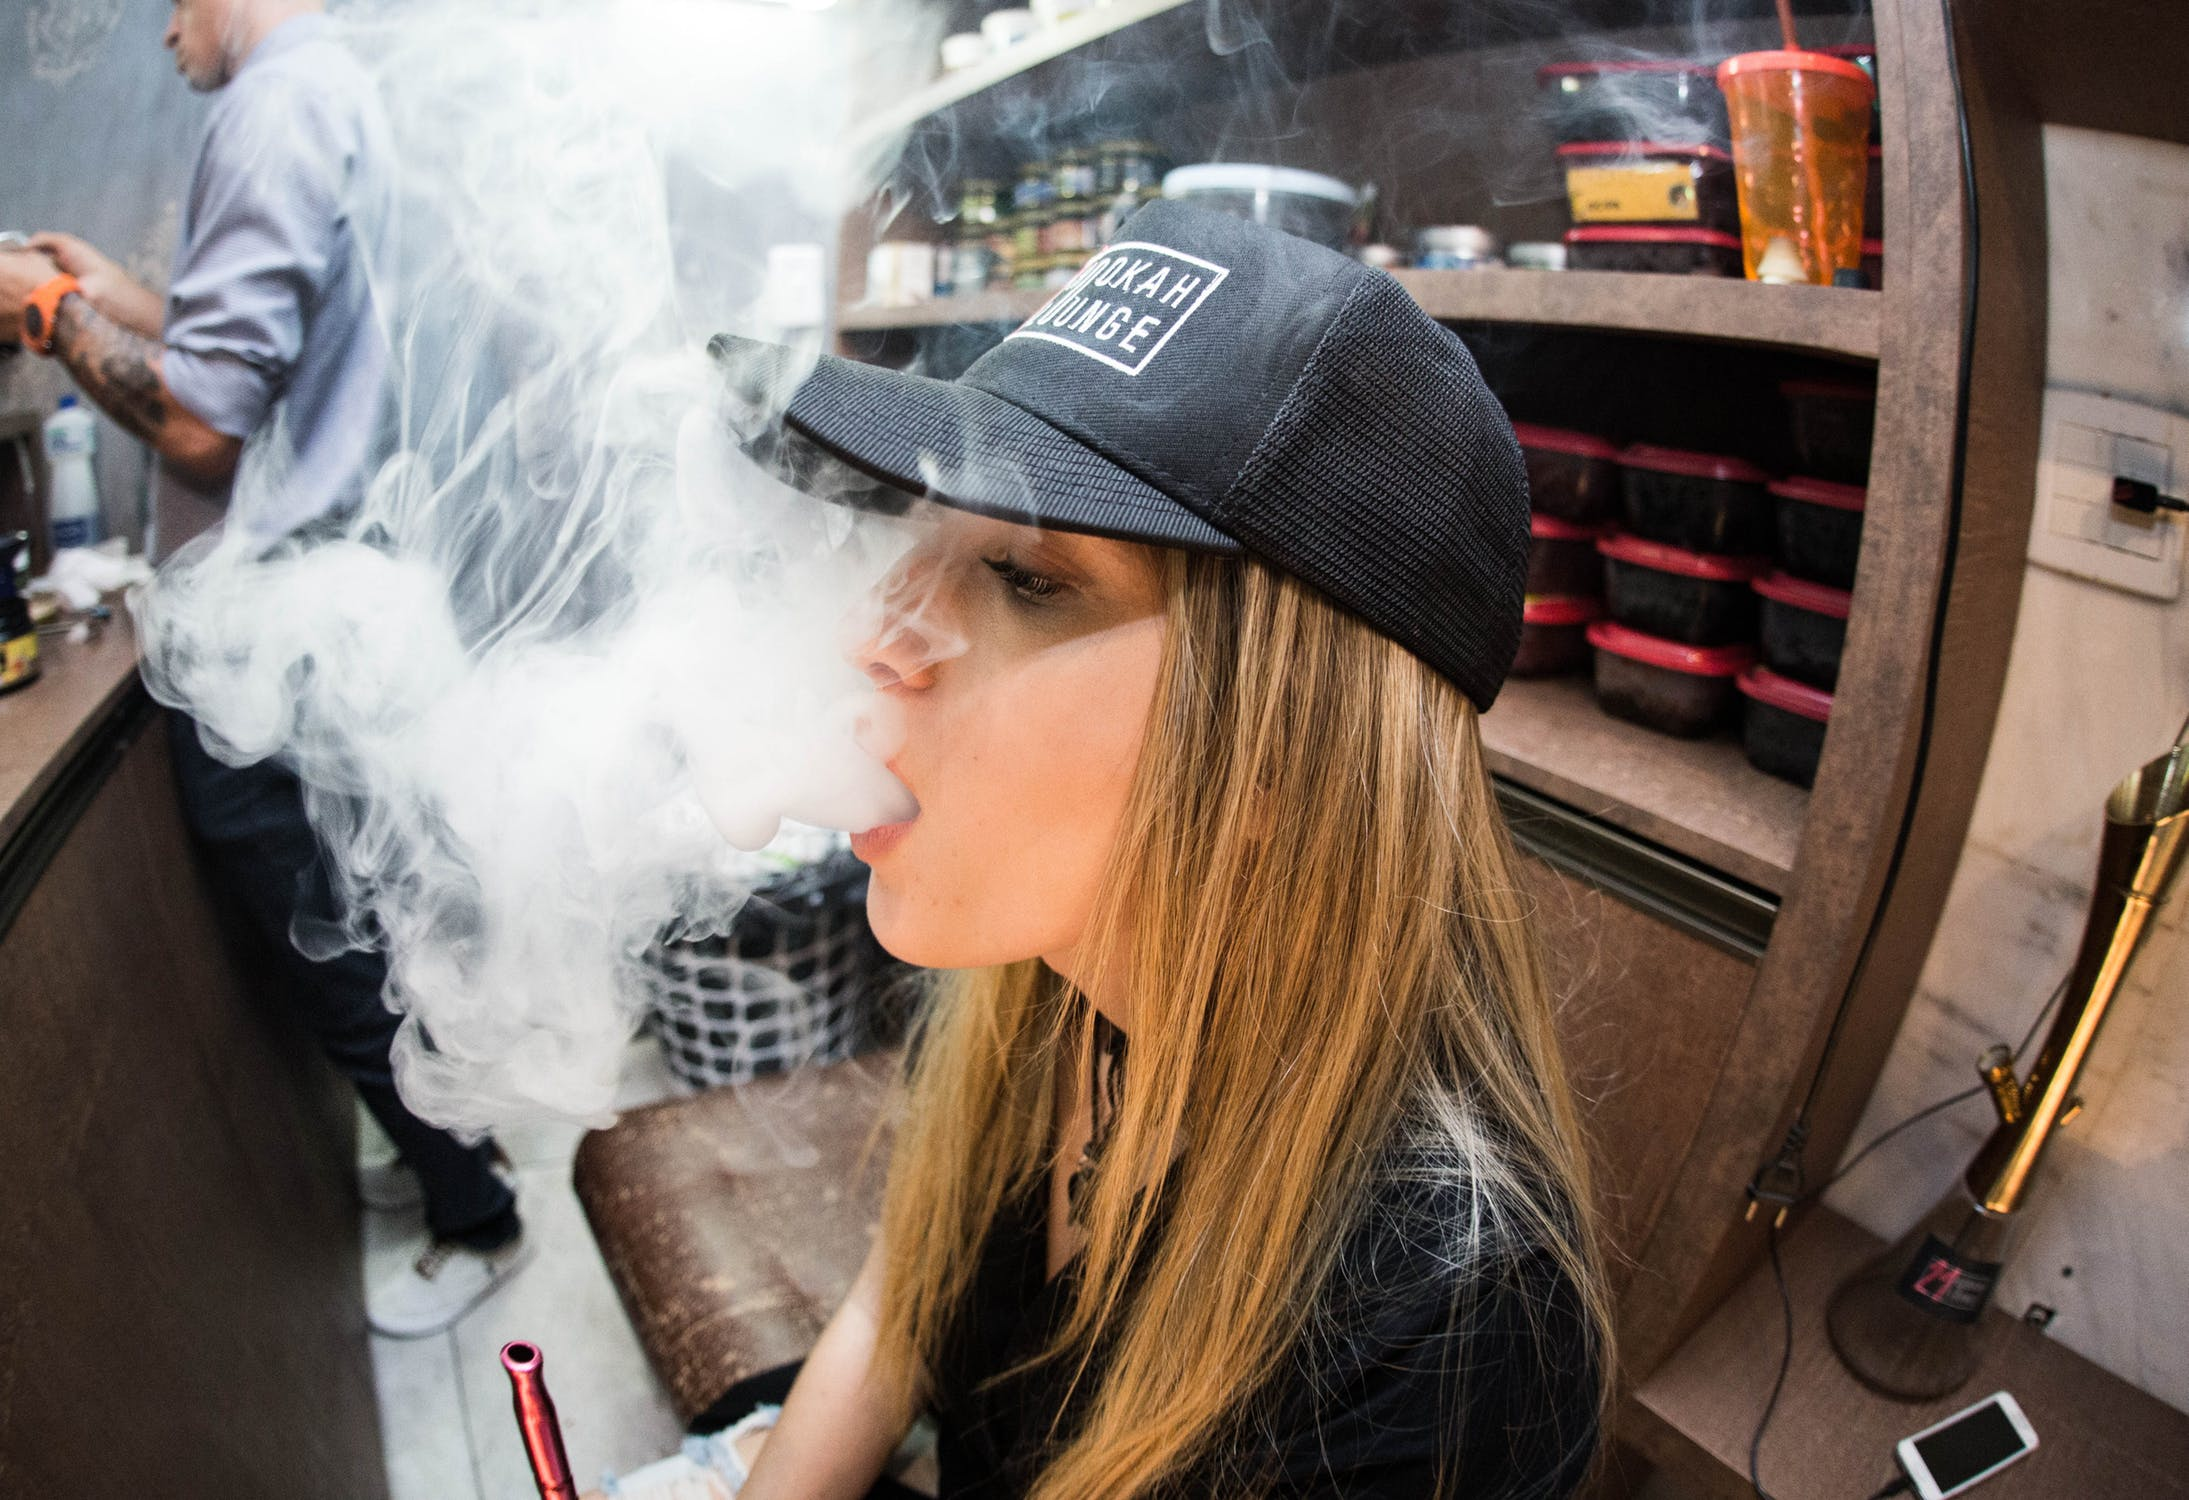 Reasons Why Quality Matters When It Comes to Vaping Liquid